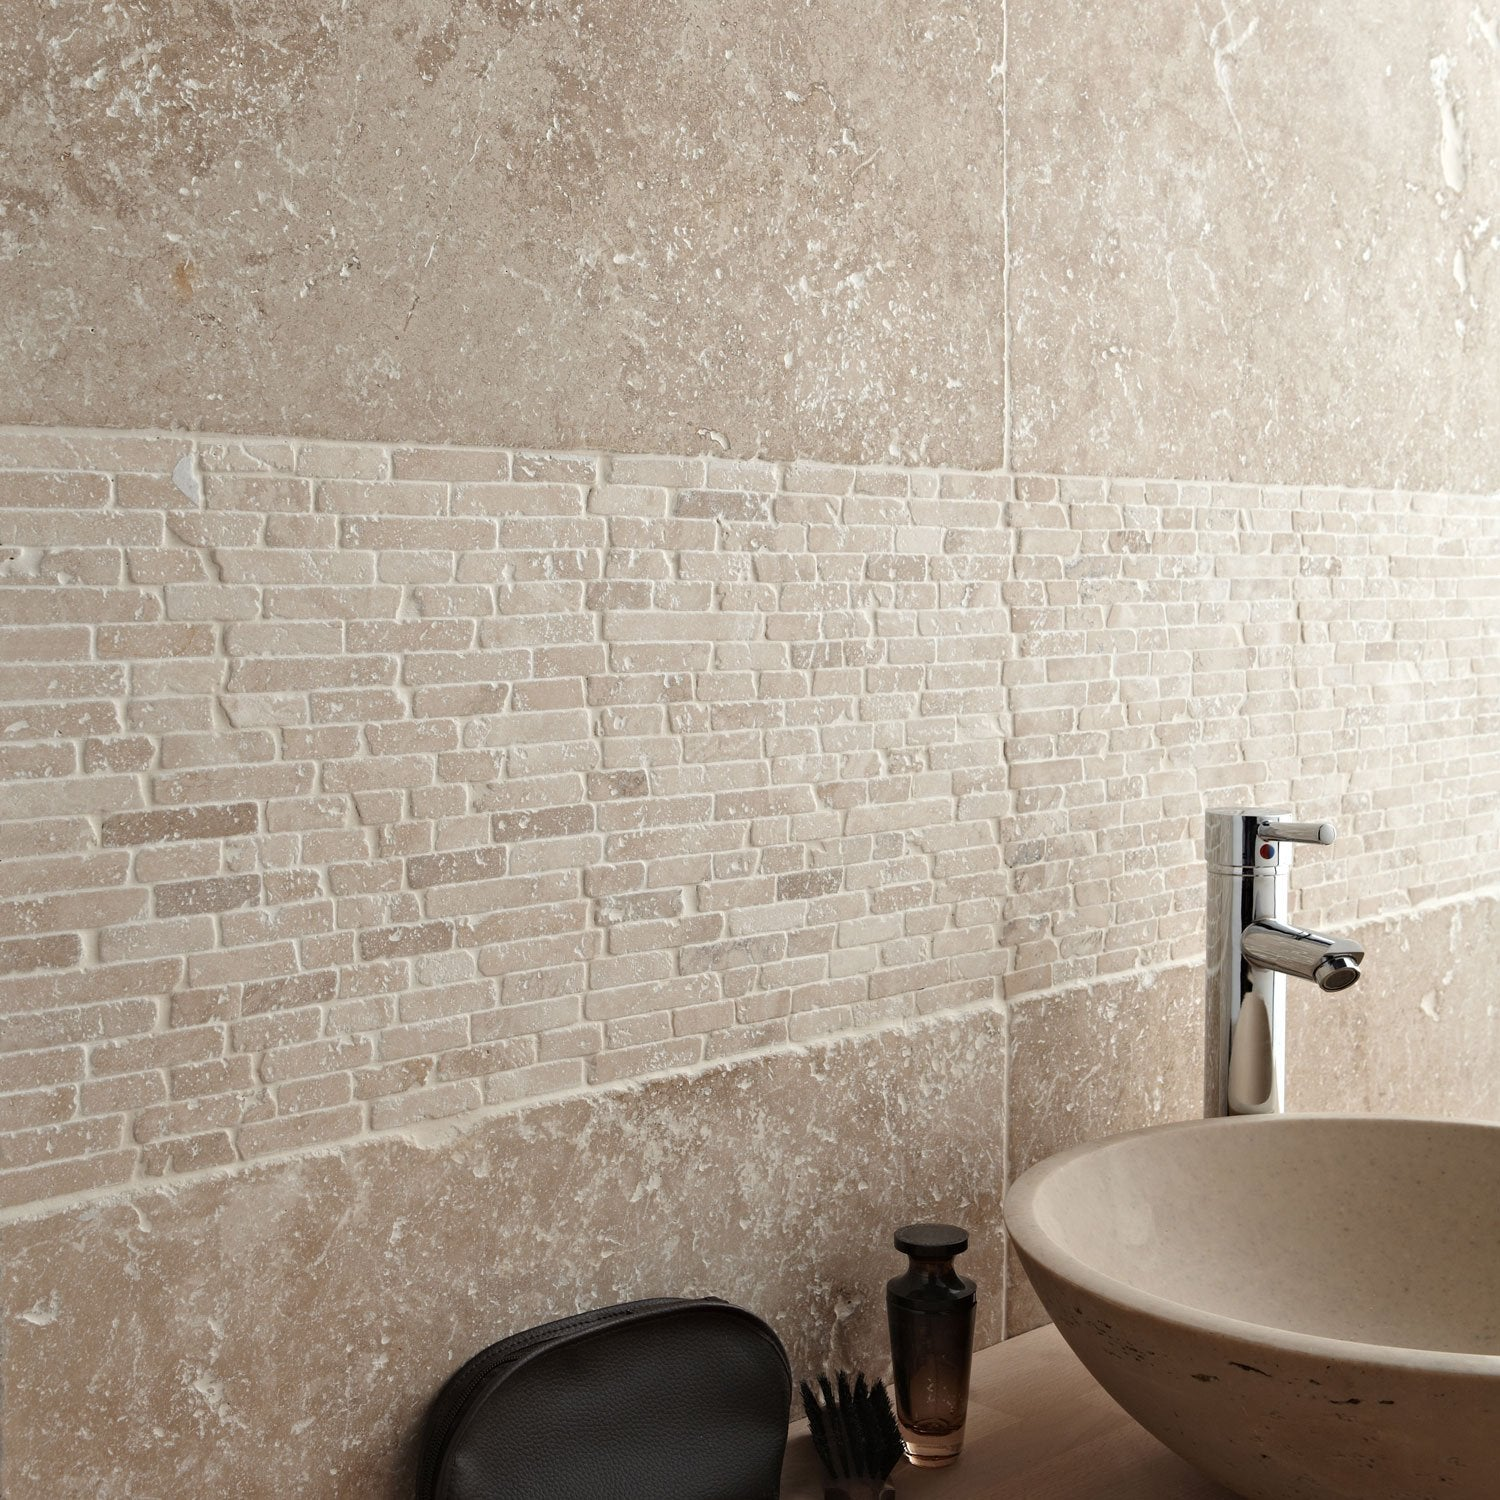 Travertin int rieur travertin rustique beige 40 6 x 61 for Carrelage marazzi salle de bain